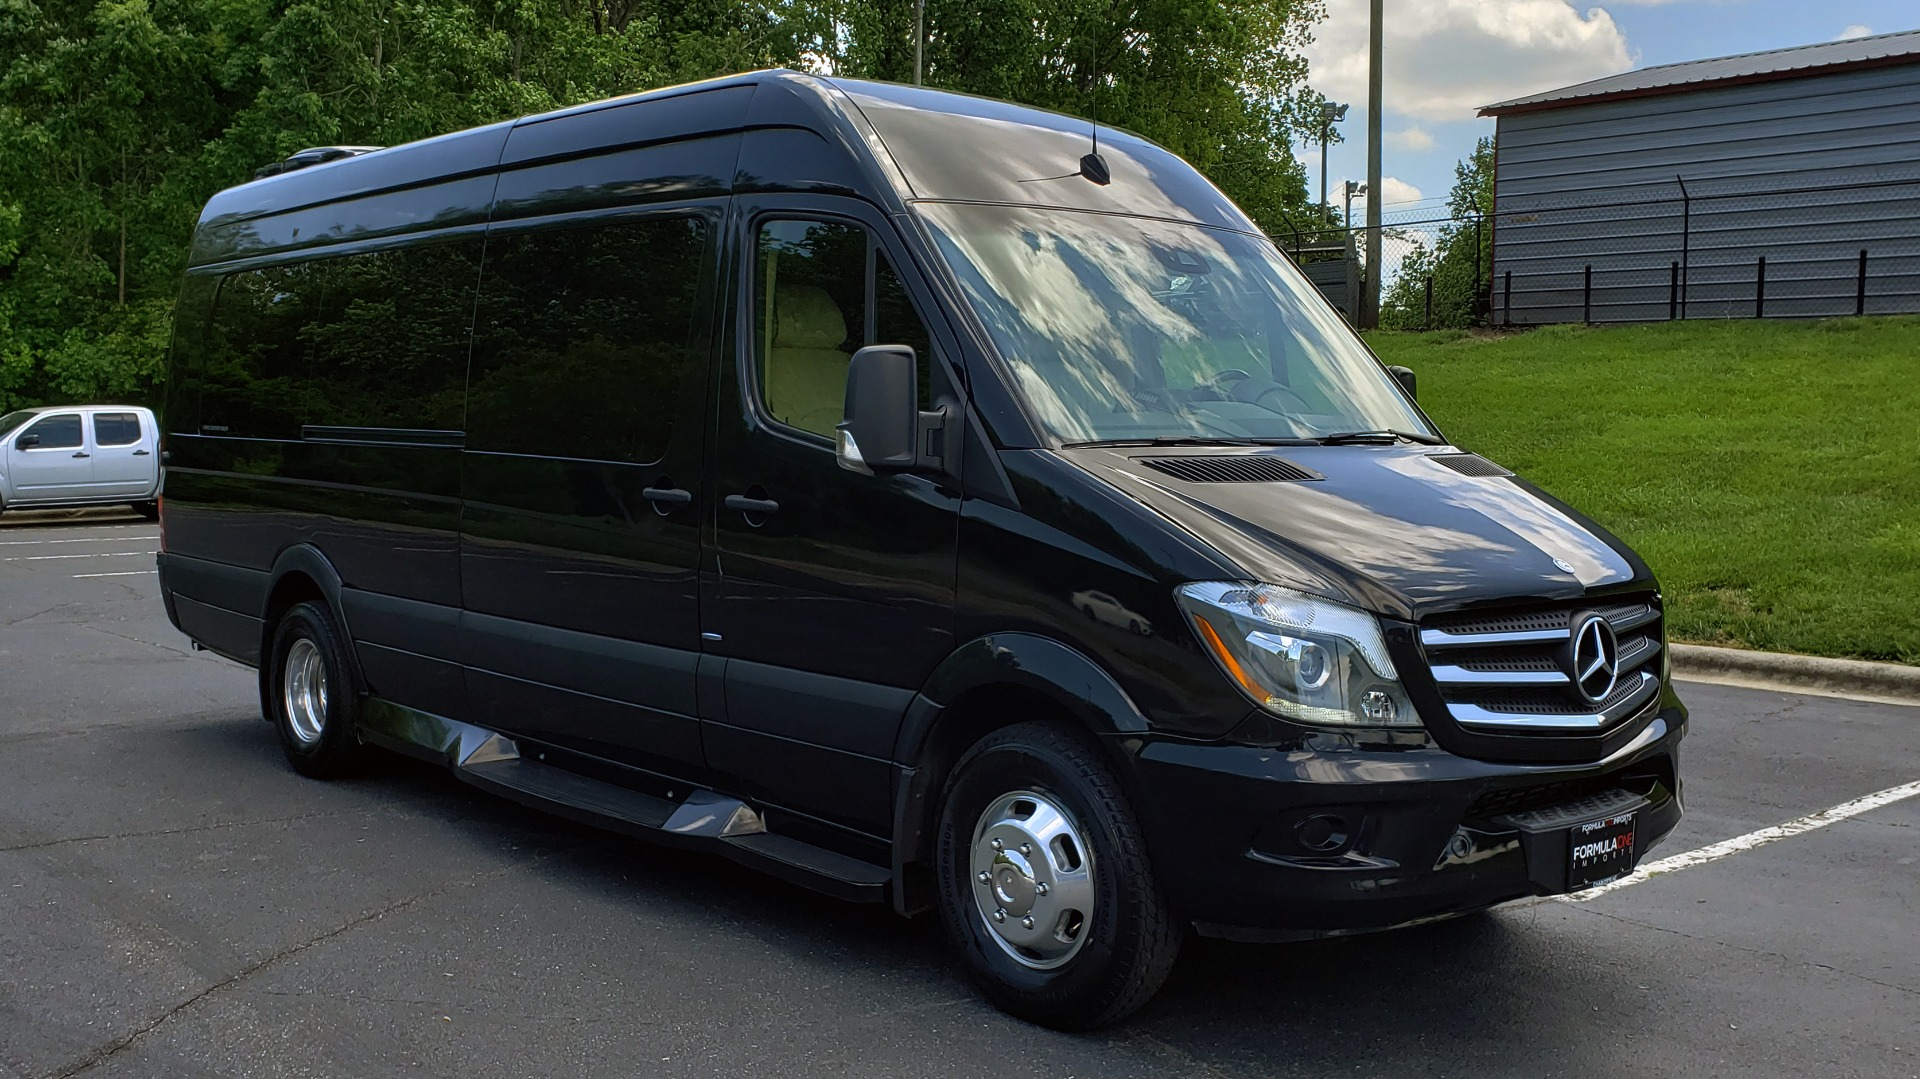 Used 2015 Mercedes-Benz SPRINTER CARGO VAN EXT 3500 170-IN WB / MIDWEST LUXURY CONVERSION for sale $84,995 at Formula Imports in Charlotte NC 28227 4